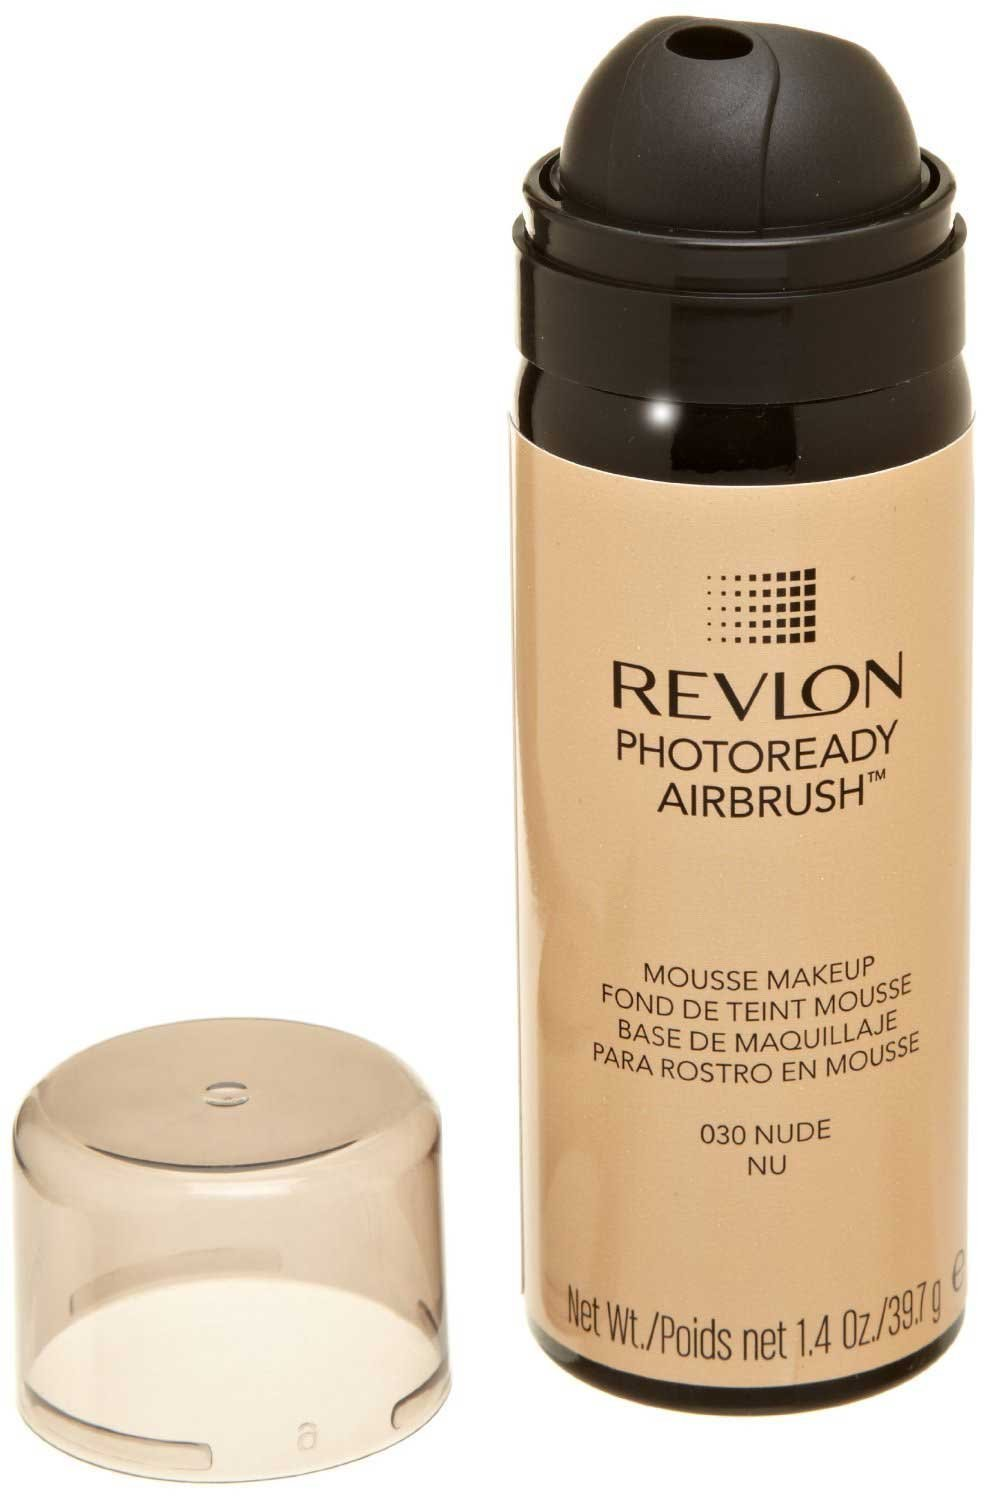 REVLON Photoready Airbrush Mousse Makeup, 030, Nude, (Pack of 3)